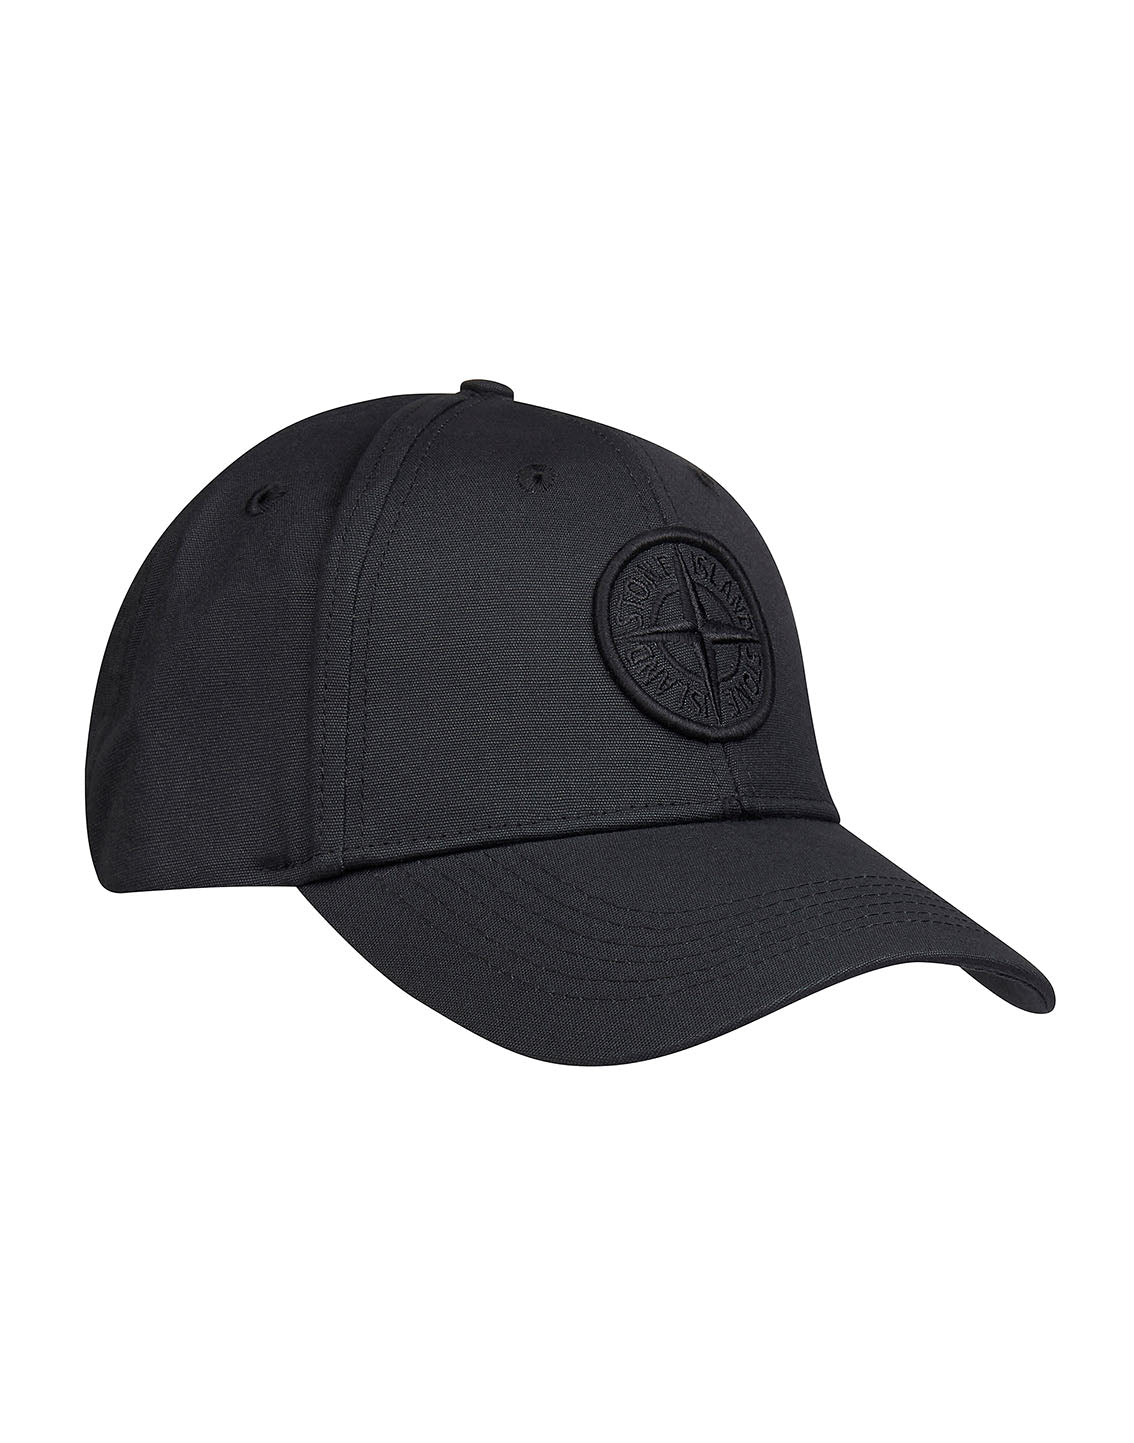 99168 Hat in Black